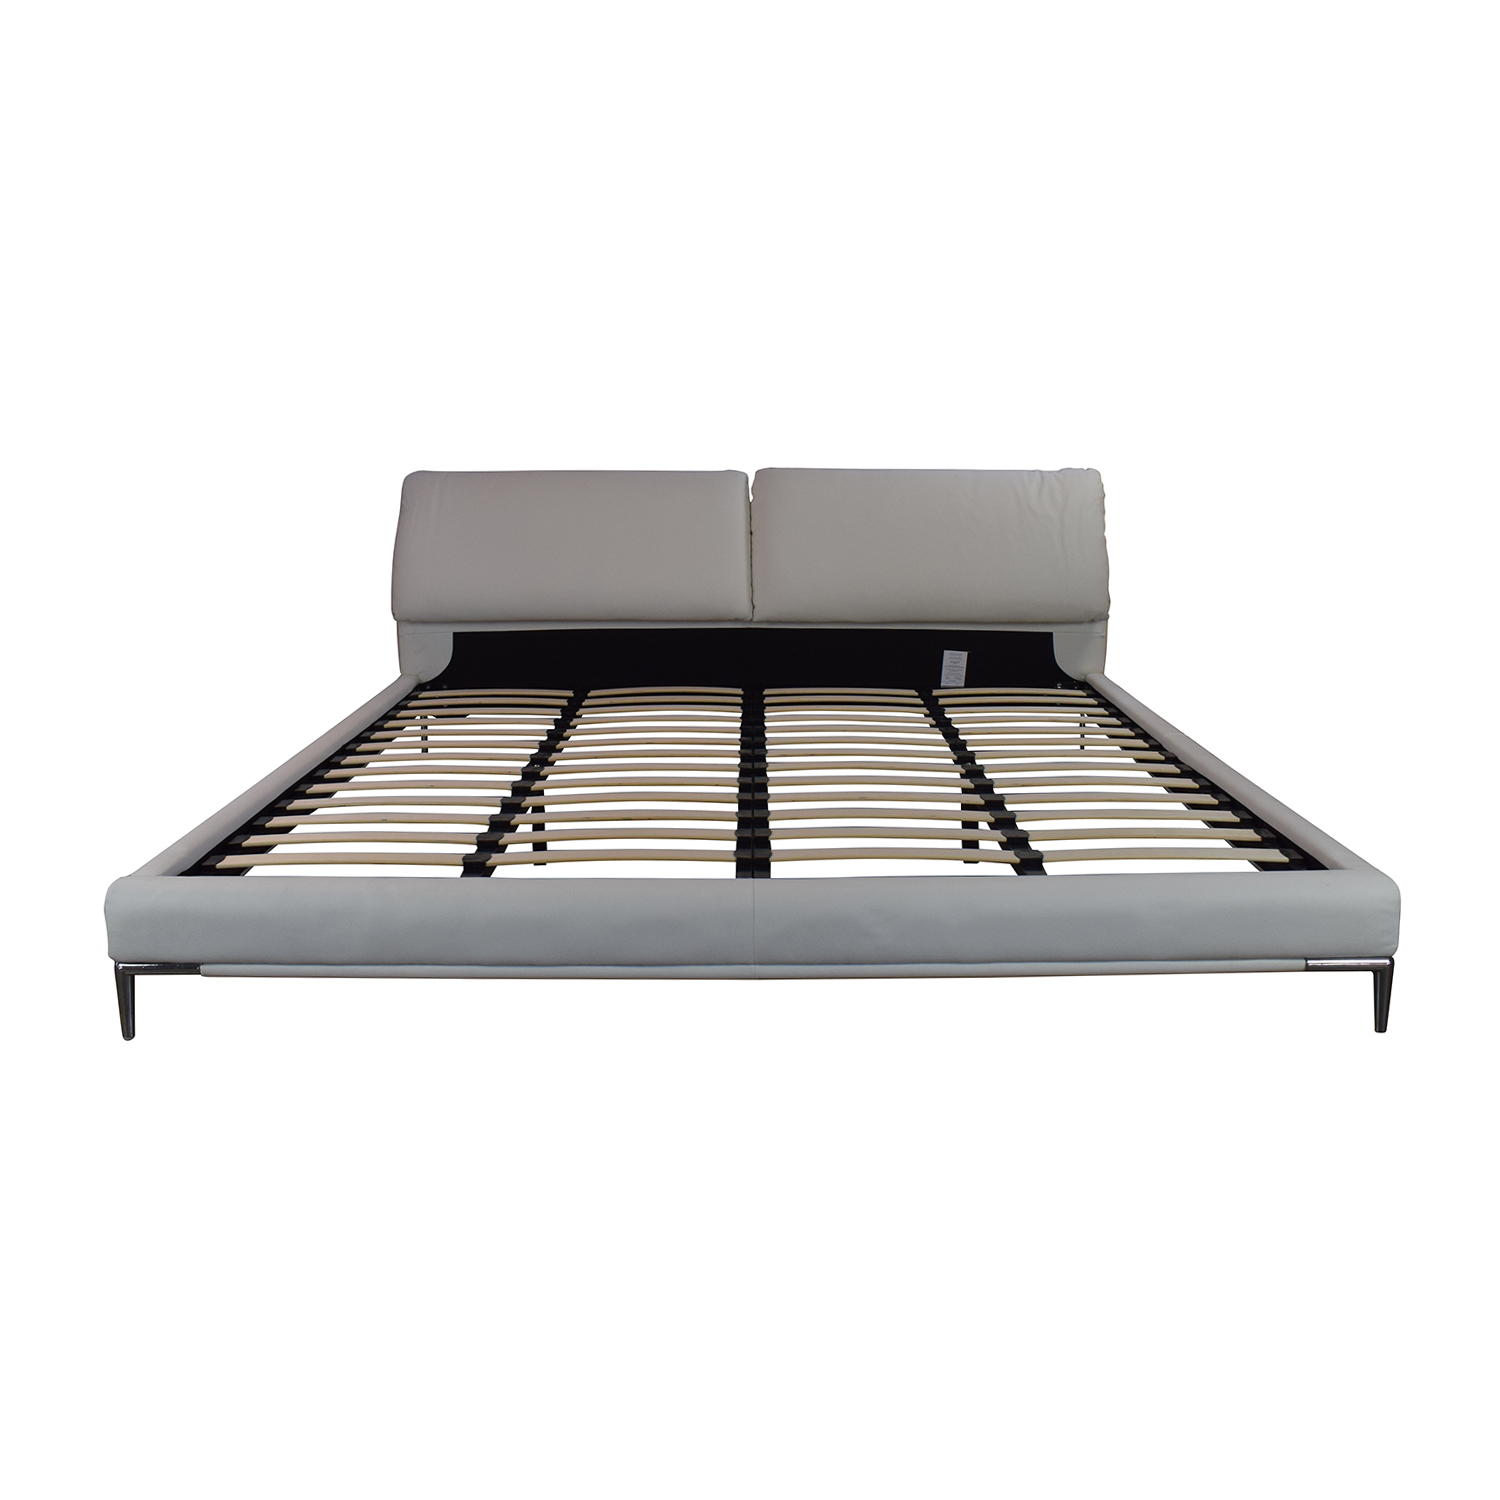 Modani White Leather Platform King Bed Frame sale